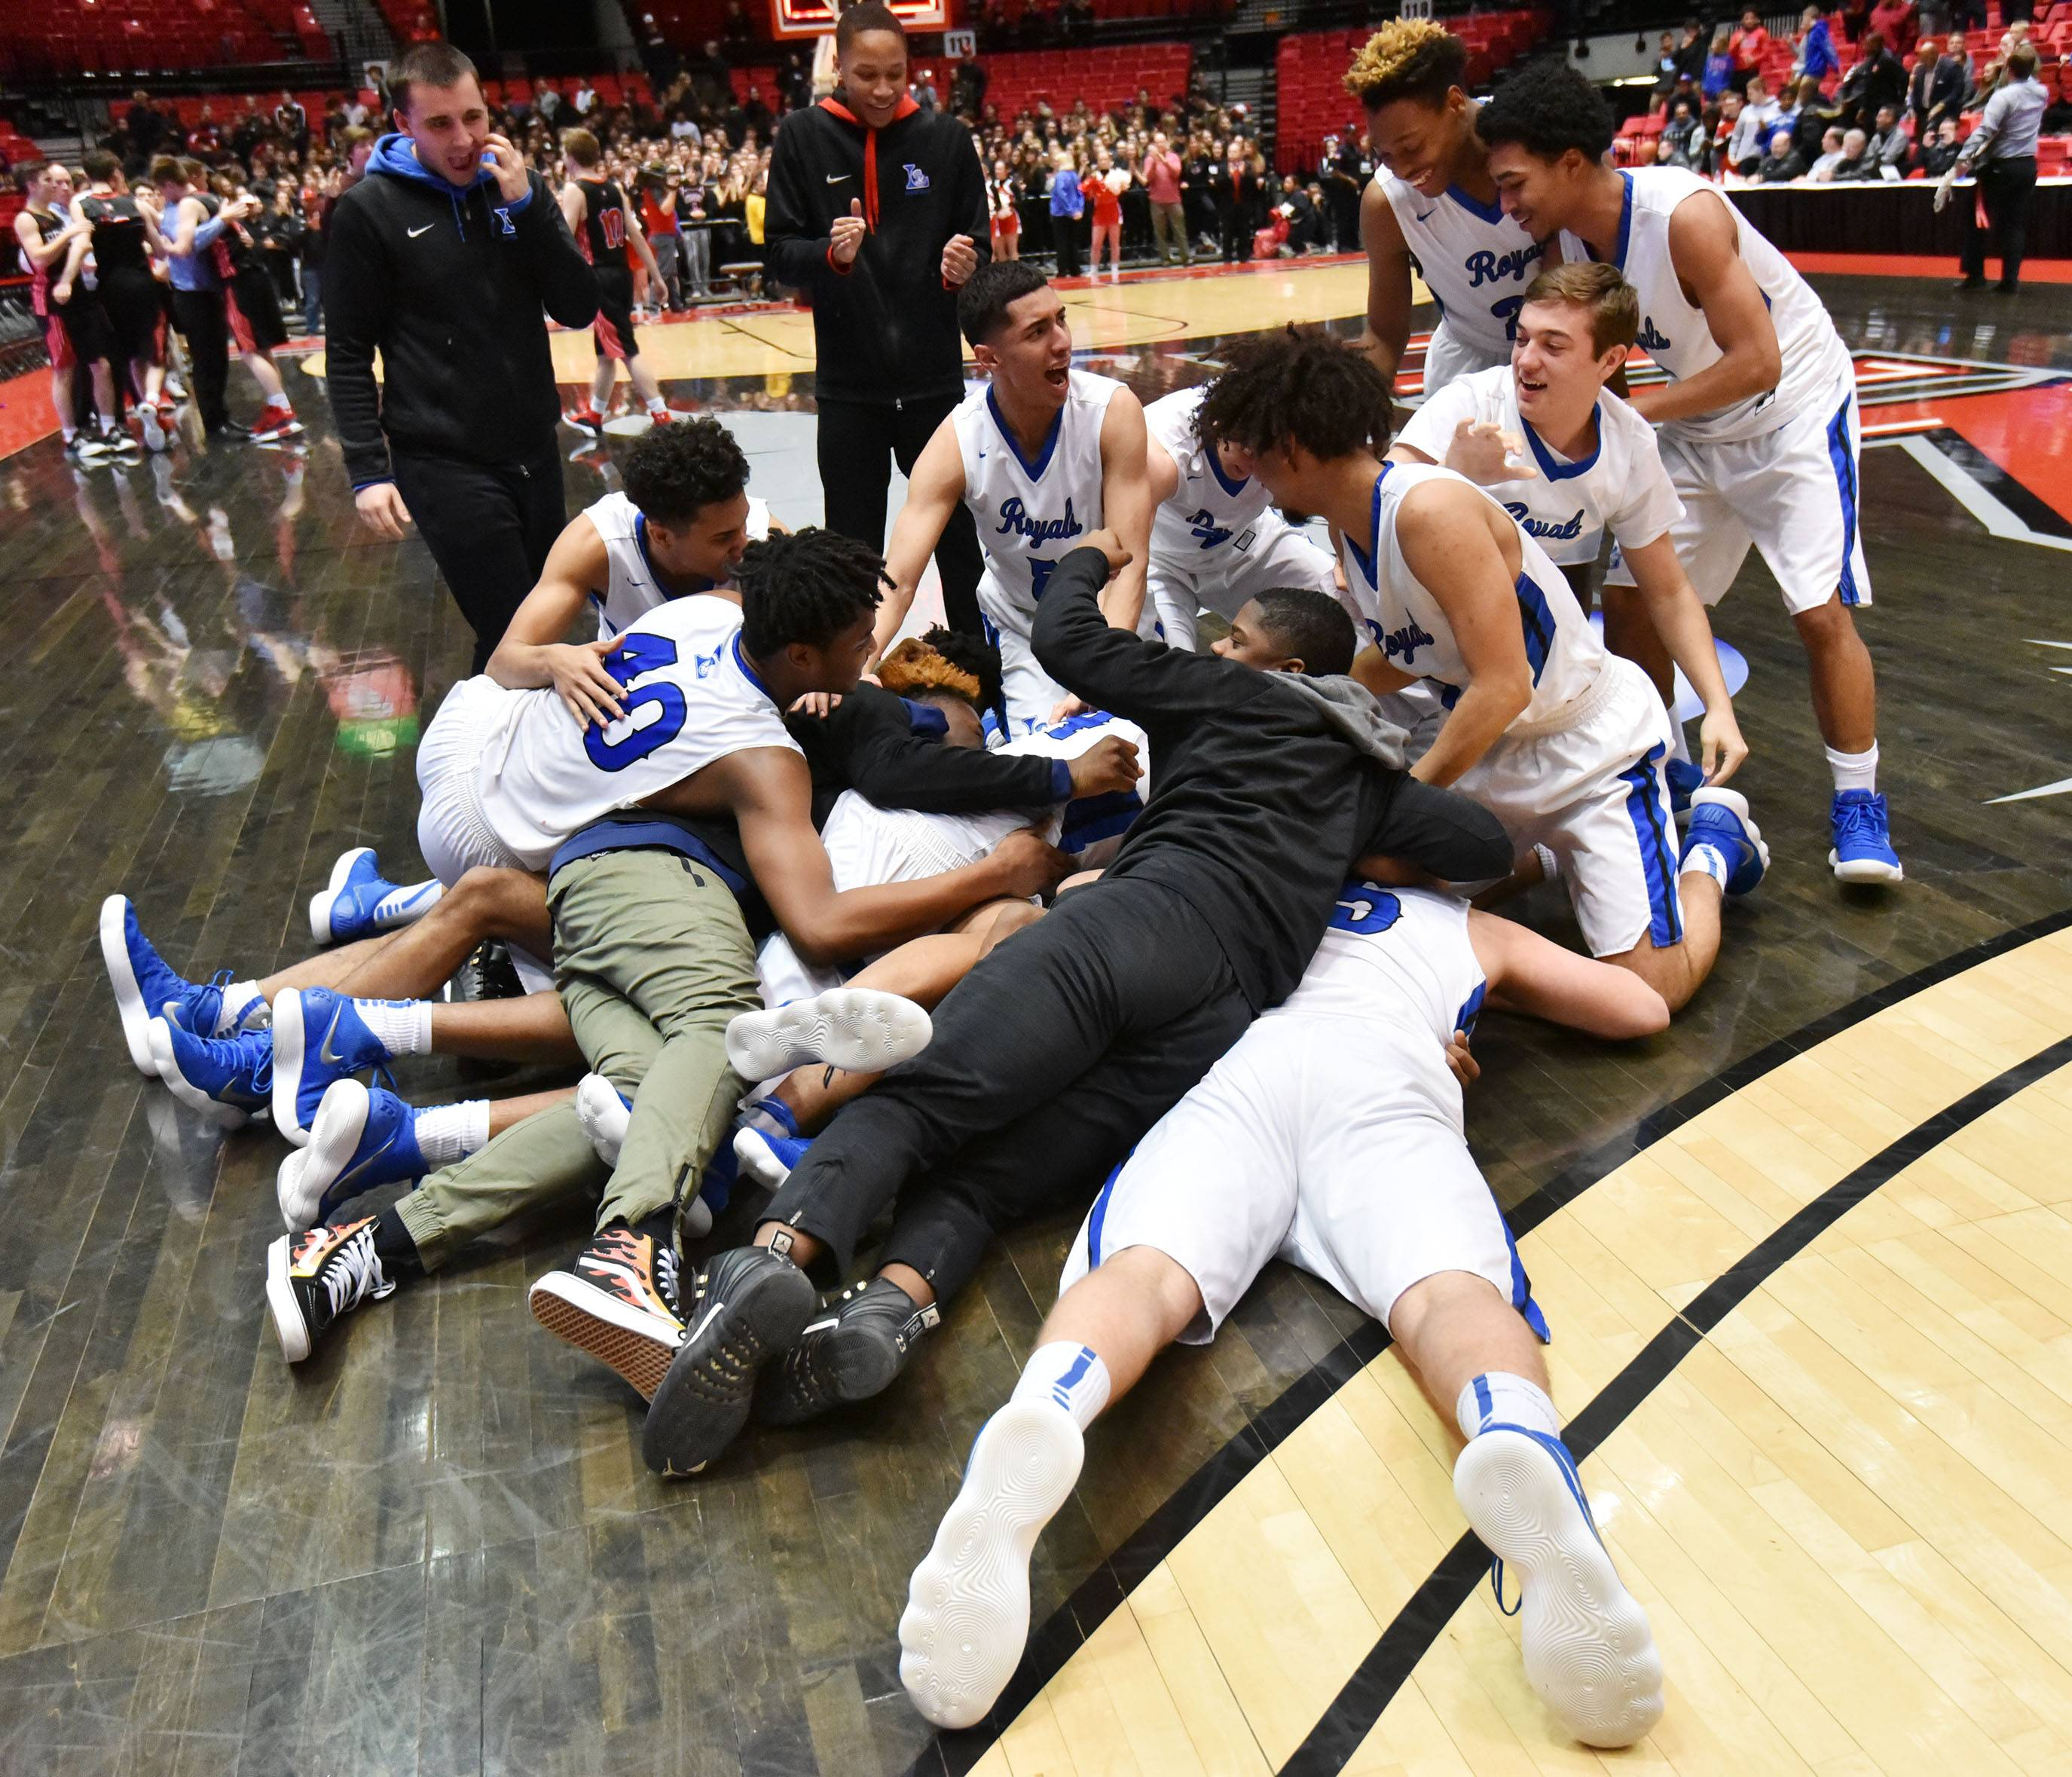 Larkin players pile together after beating Benet in the Class 4A supersectional boys basketball game at Northern Illinois University Tuesday.